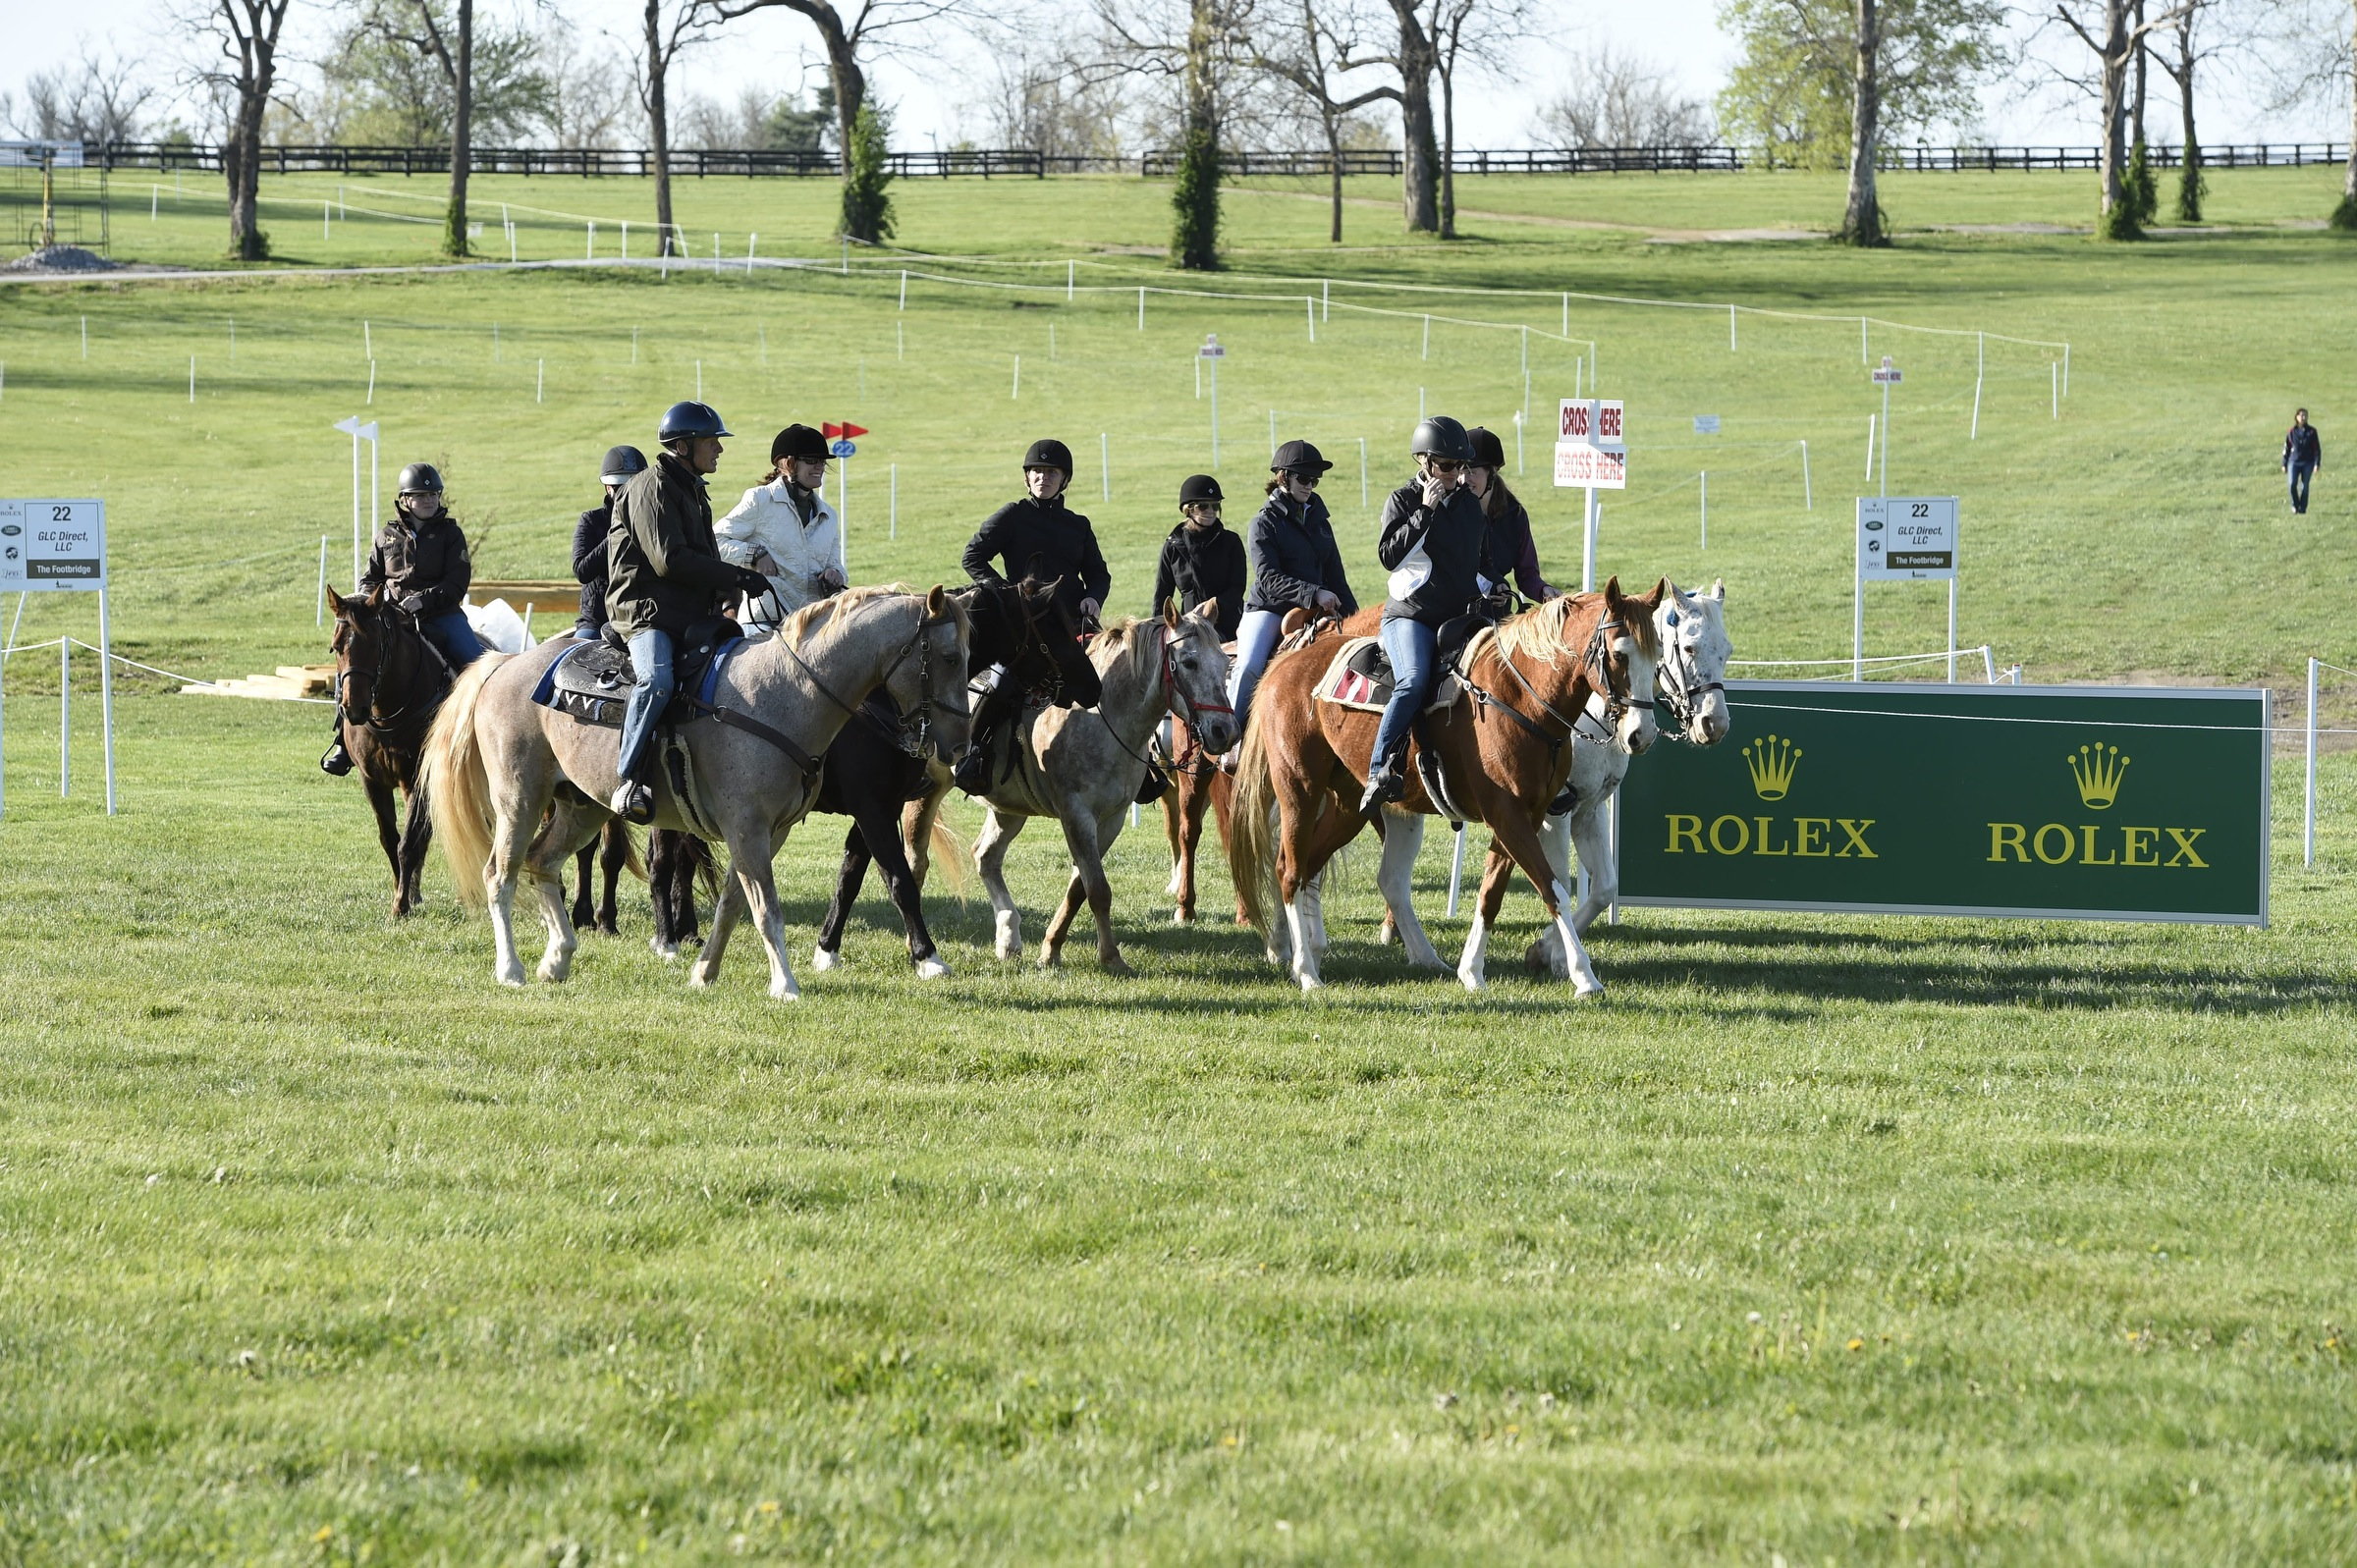 A small group of equestrian media members, including Sidelines' very own Susan Friedland-Smith, had the ride-of-a-lifetime around the Rolex cross-country course. (Photo courtesy of Rolex)